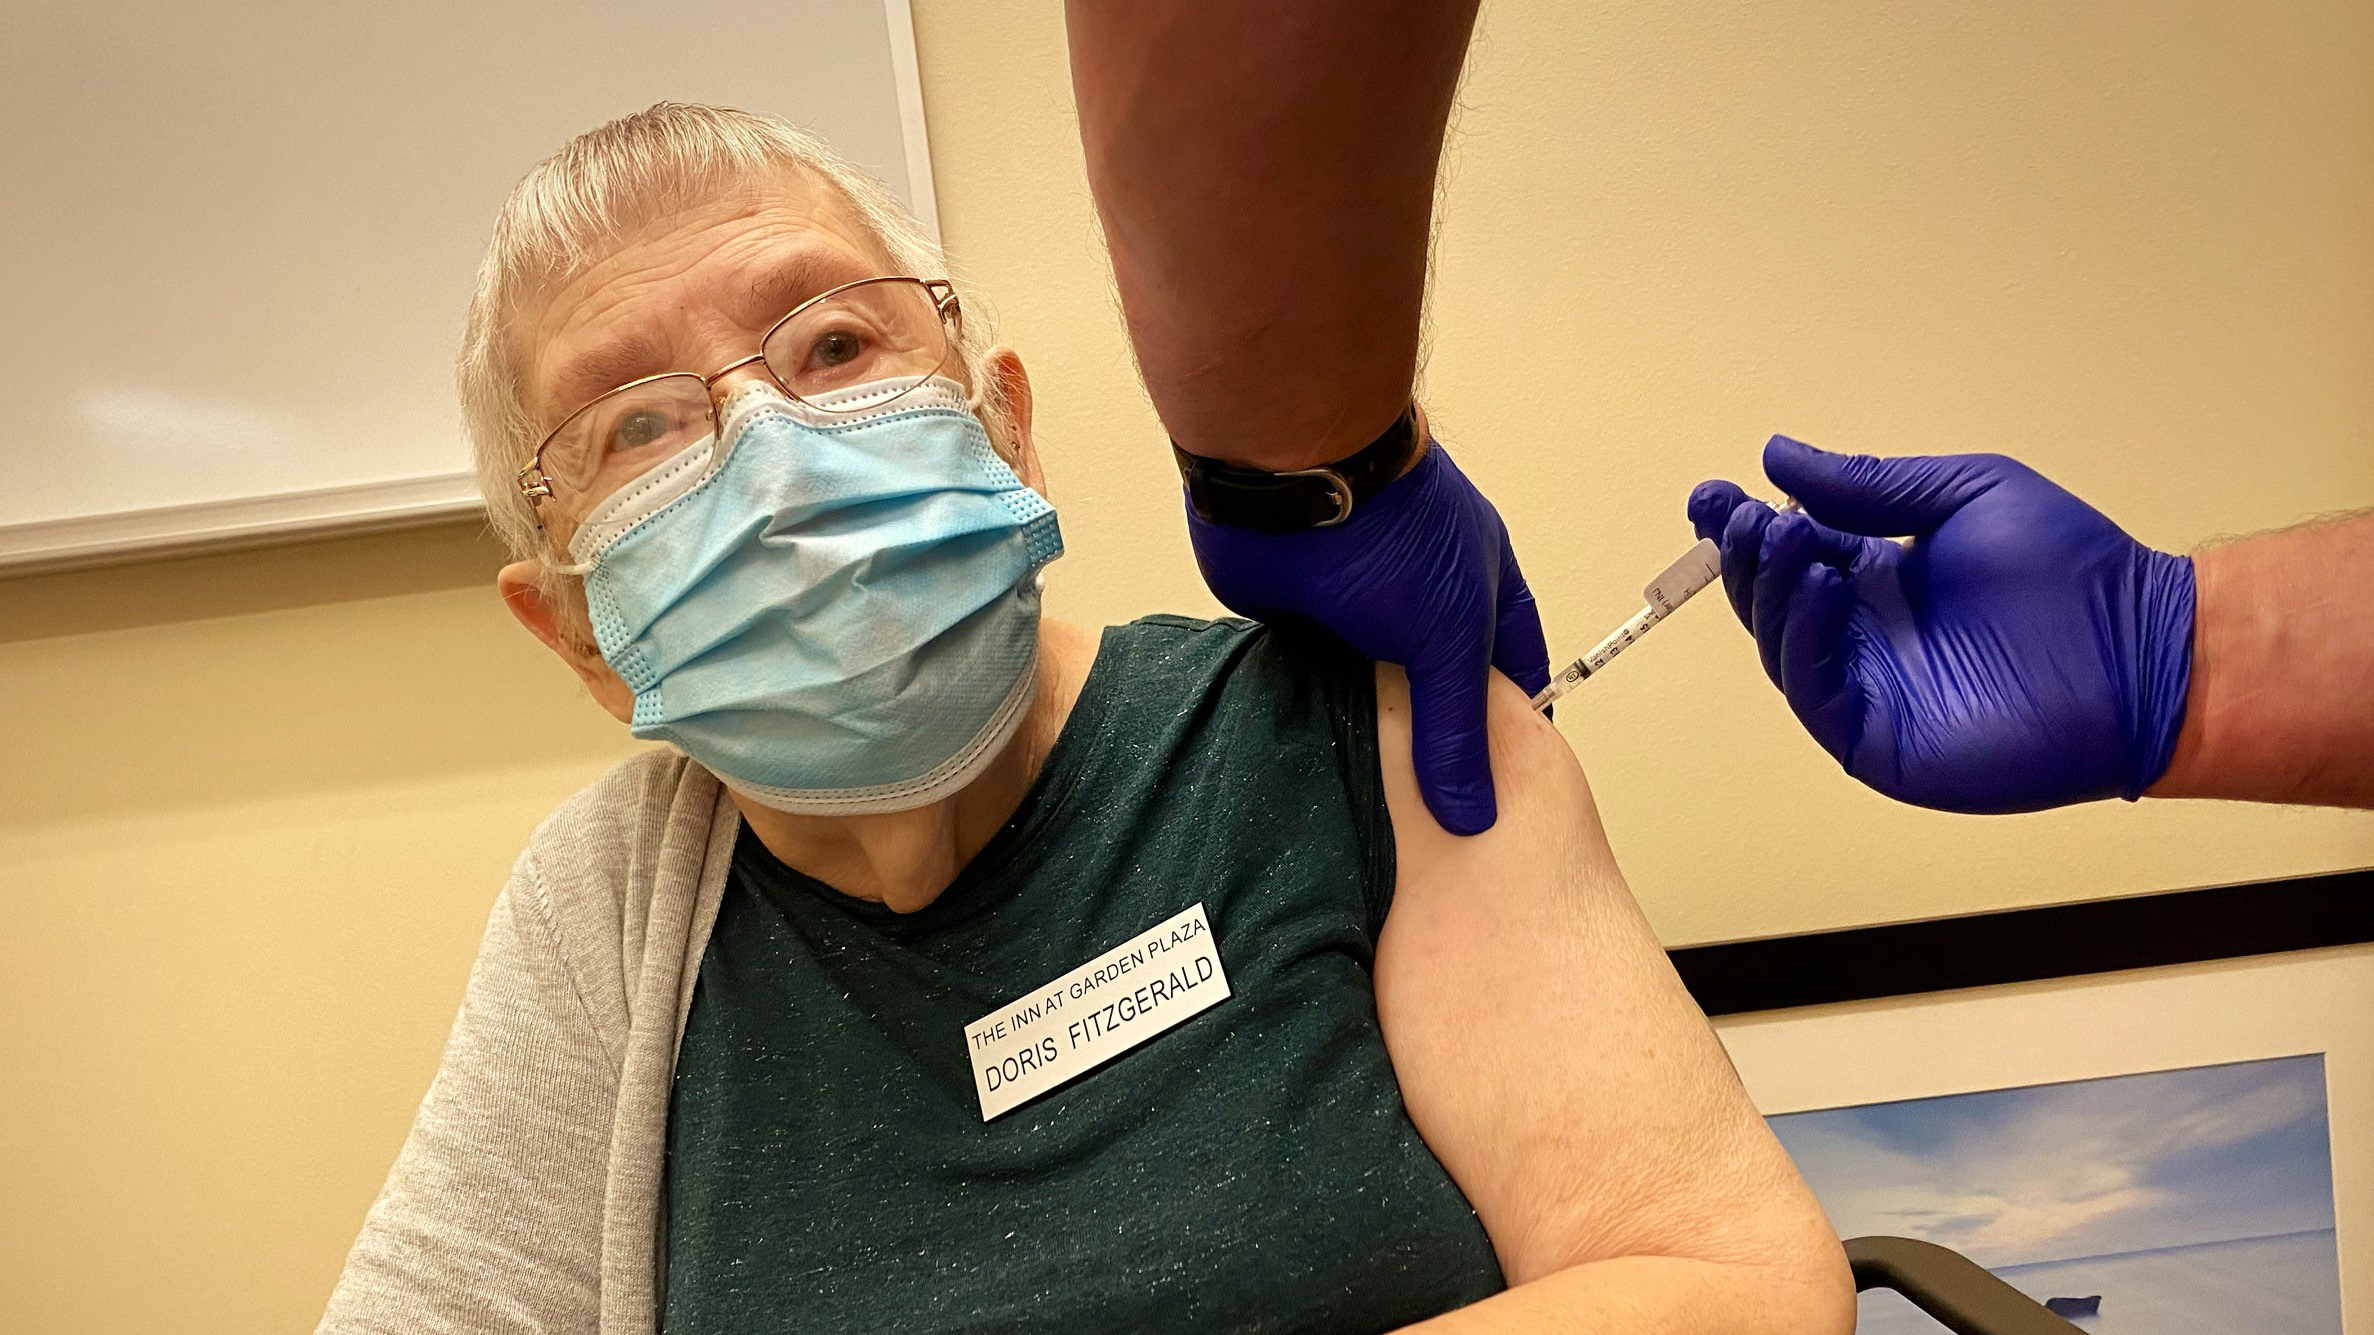 Army Veteran Doris Fitzgerald, 78, receives her second COVID-19 vaccine Feb. 17 at the PFC Floyd K. Lindstrom Clinic in Colorado Springs. / Photo courtesy VA Eastern Colorado Health Care System